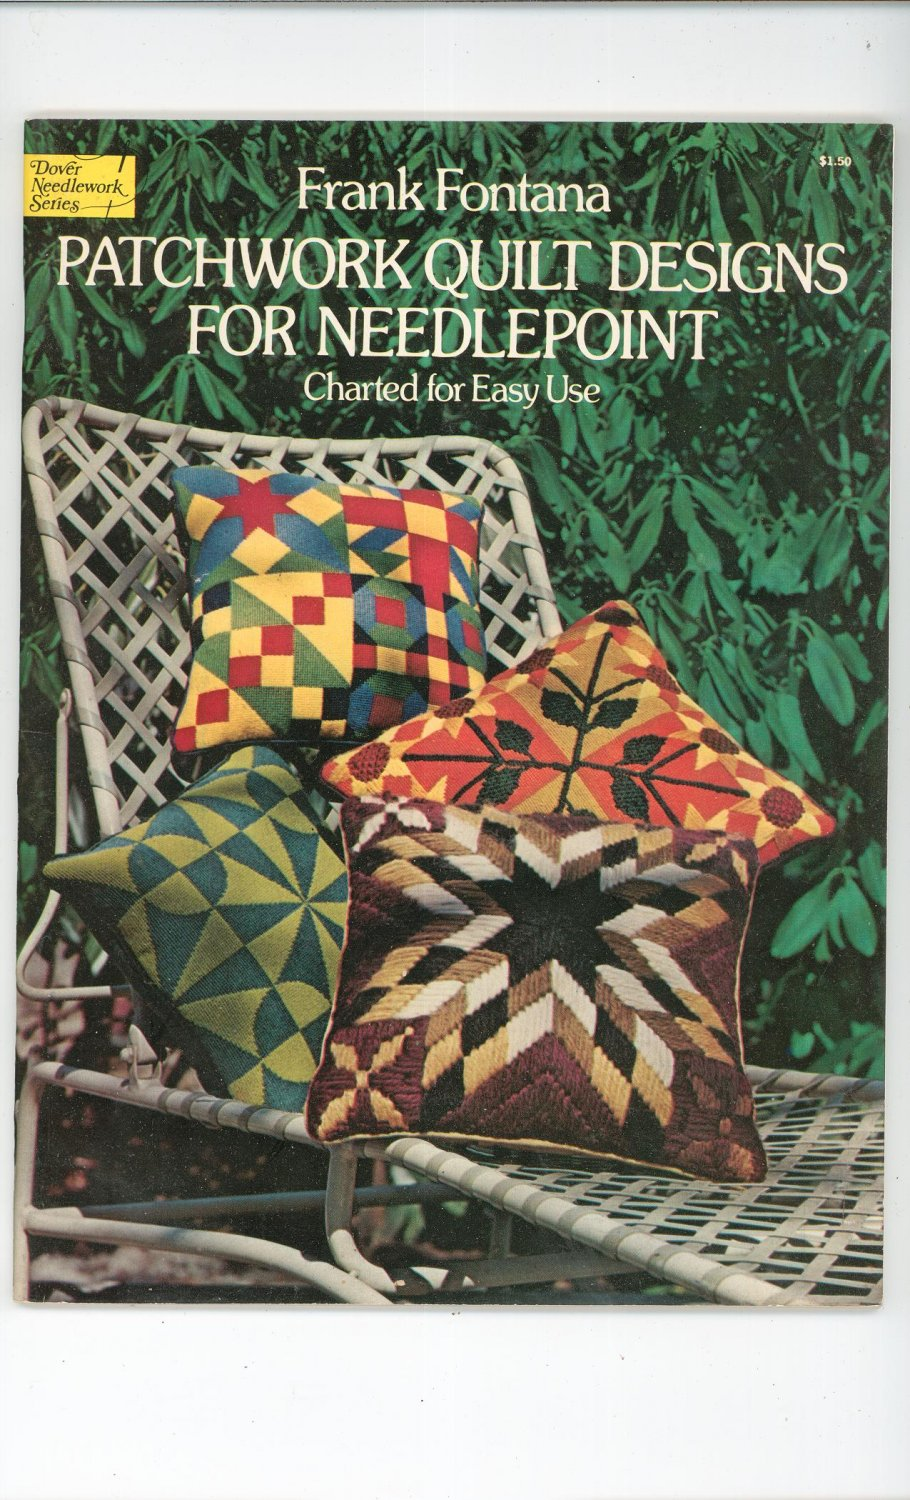 Patchwork Quilt Designs For Needlepoint Charted For Easy Use Frank Fontana 0486233006